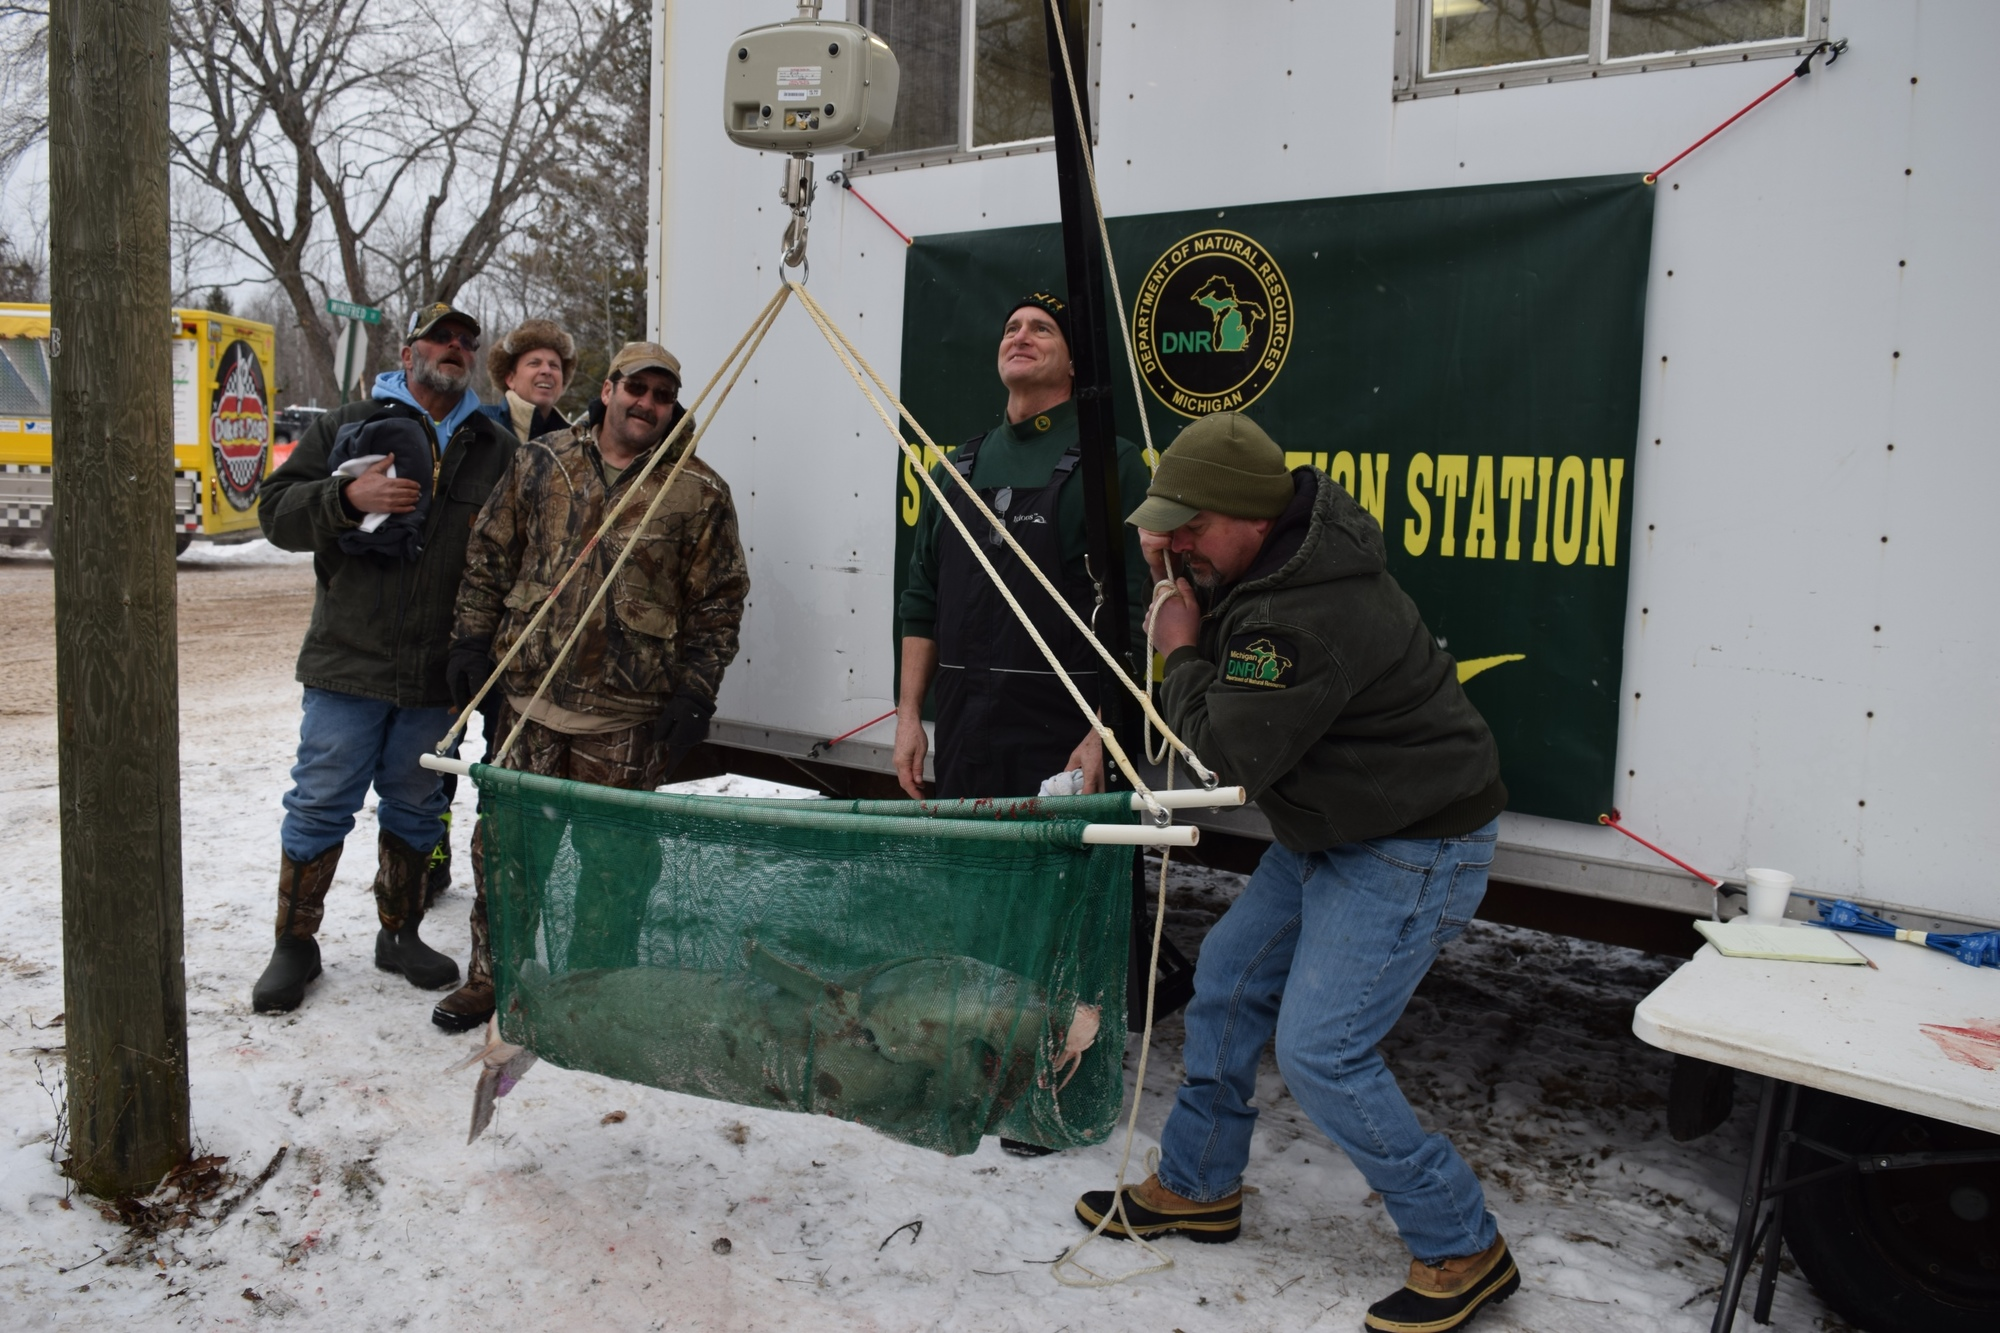 DNR sturgeon researcher Ed Baker reads the weight, as DNR fisheries biologist Tim Cwalinski hoists a sturgeon on the scale.